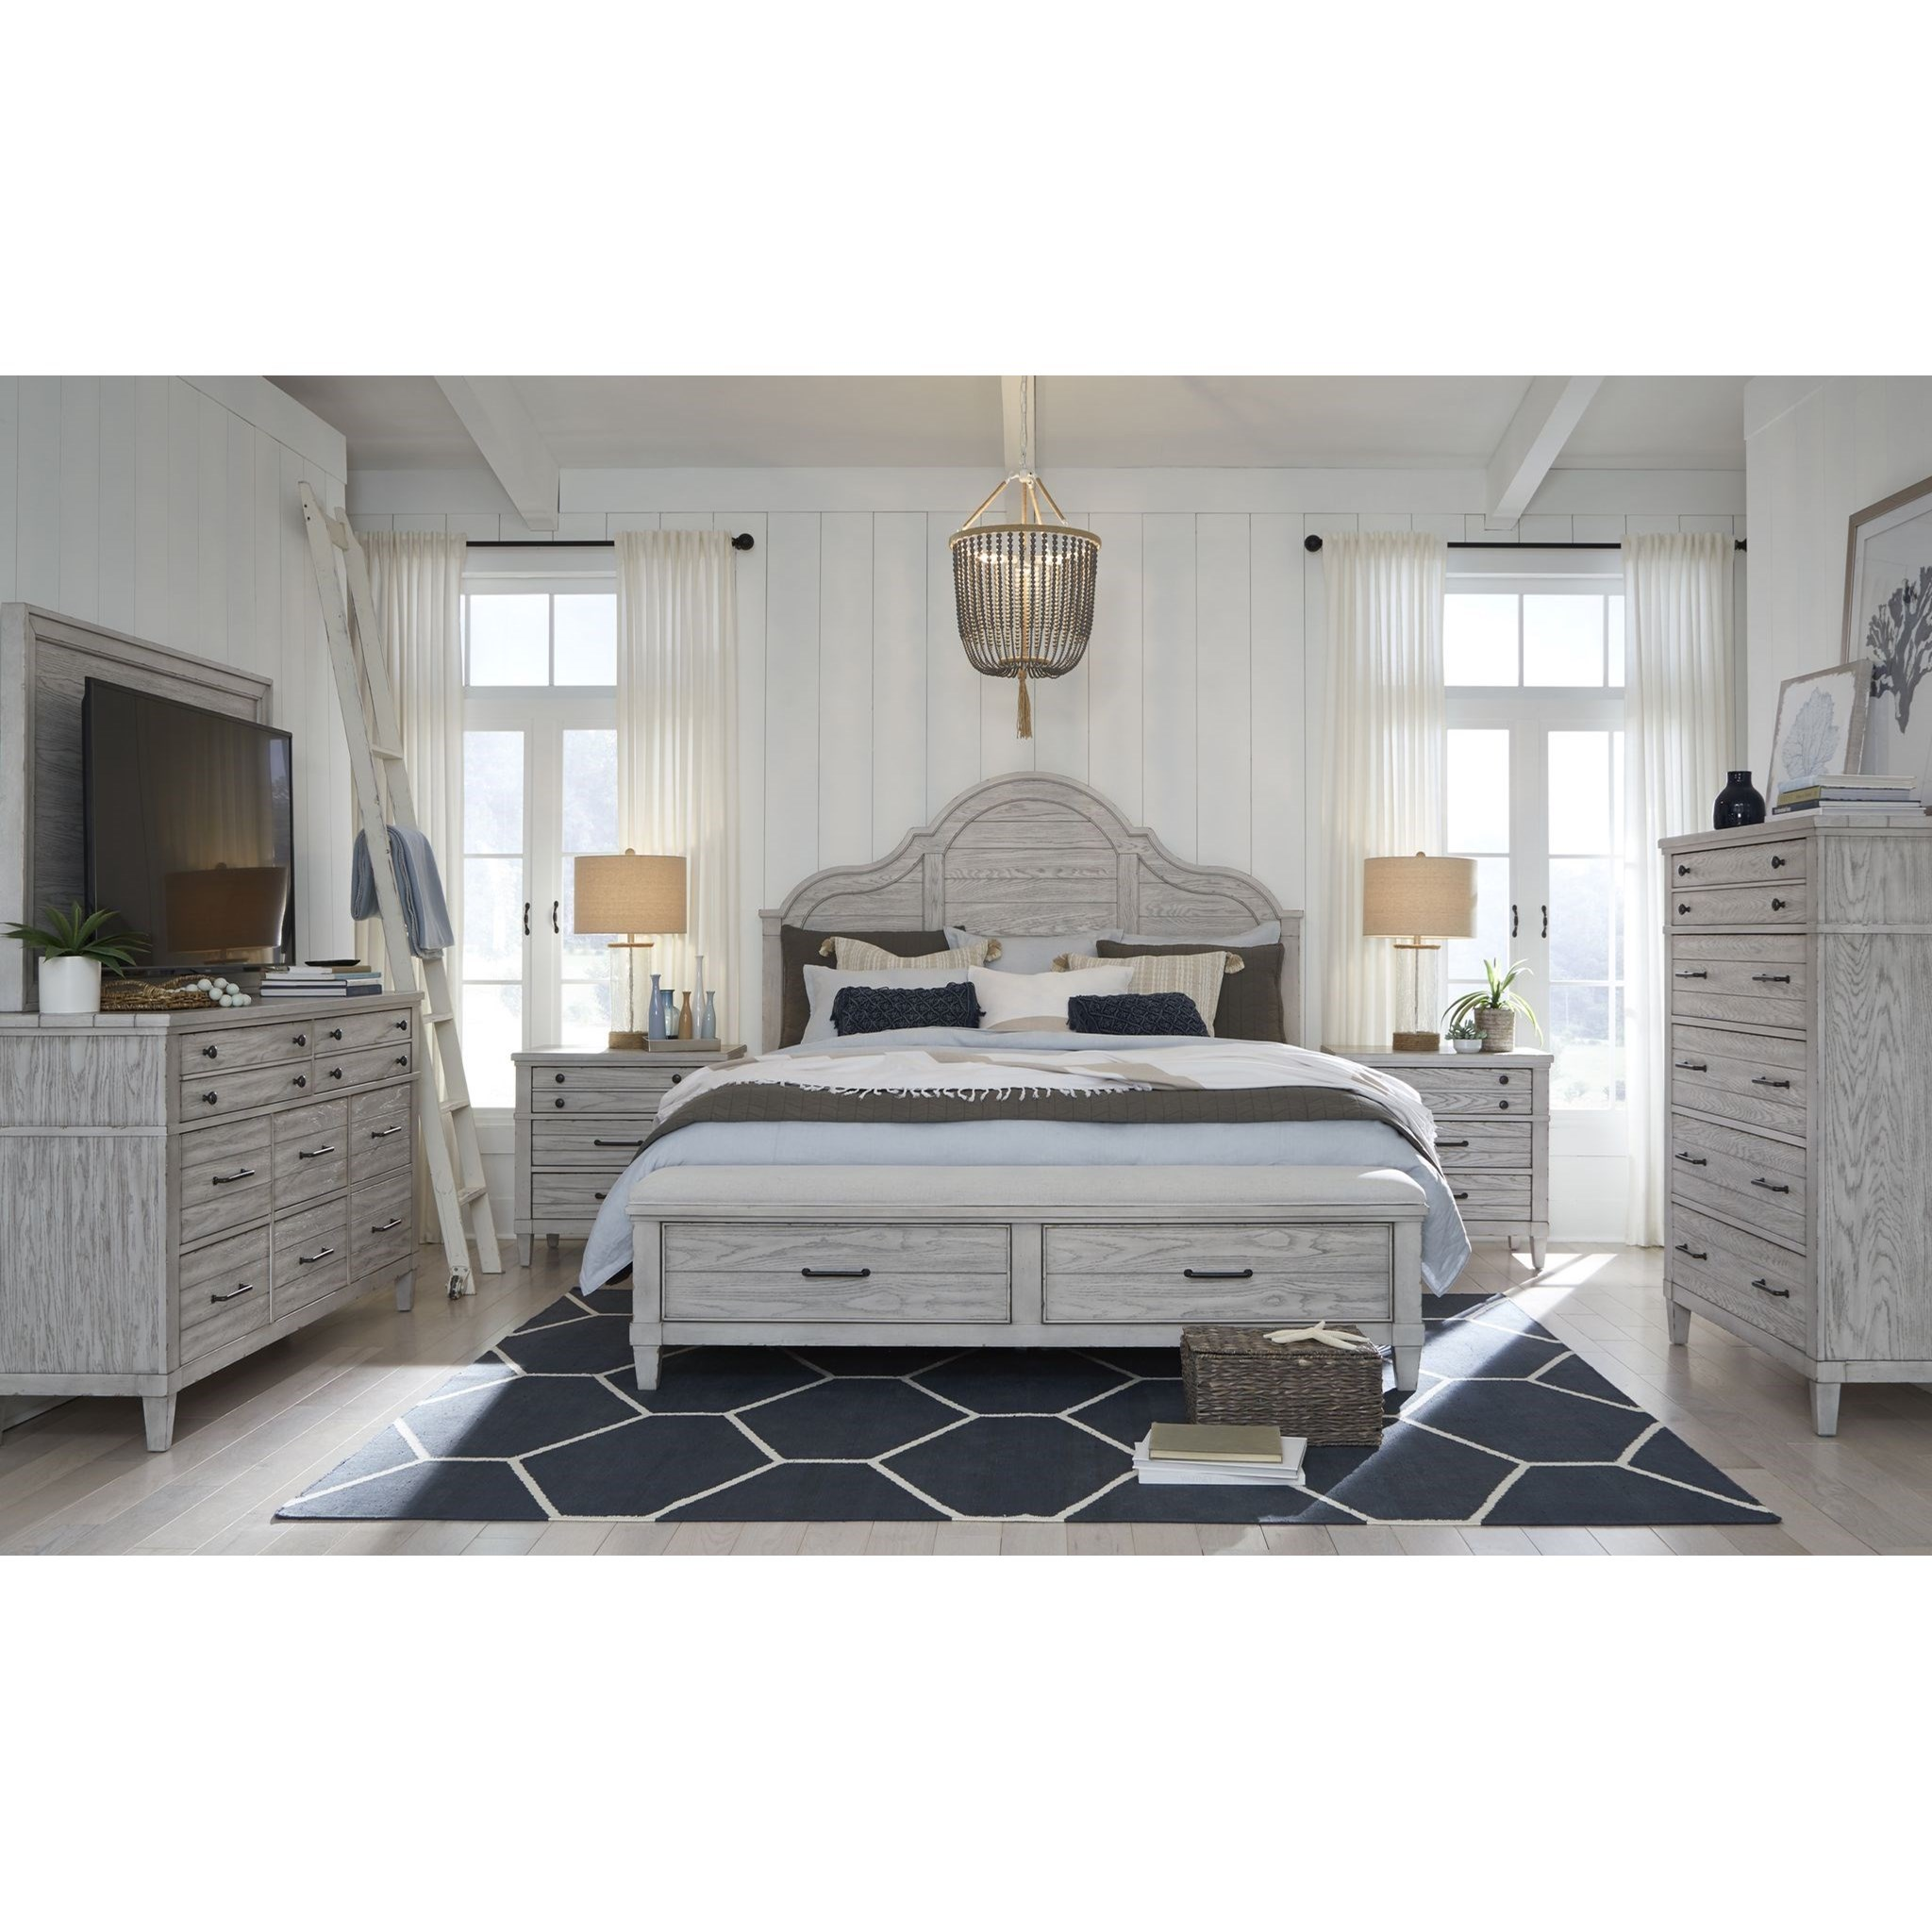 Belhaven California King Bedroom Group by Legacy Classic at Dunk & Bright Furniture